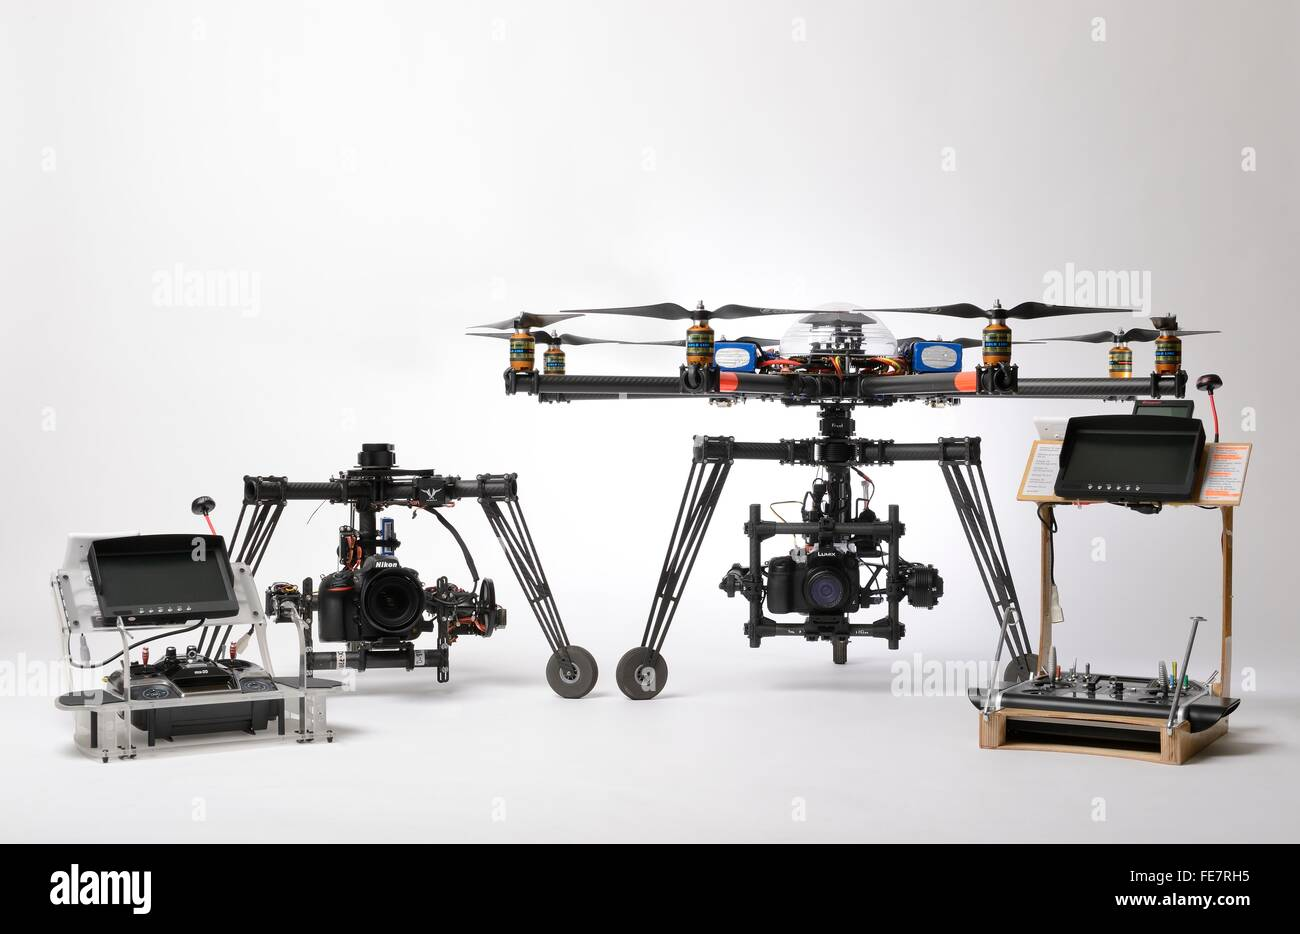 Multirotor type civil drone used for aerial photography and aerial filming with different gimbals and control desks. - Stock Image